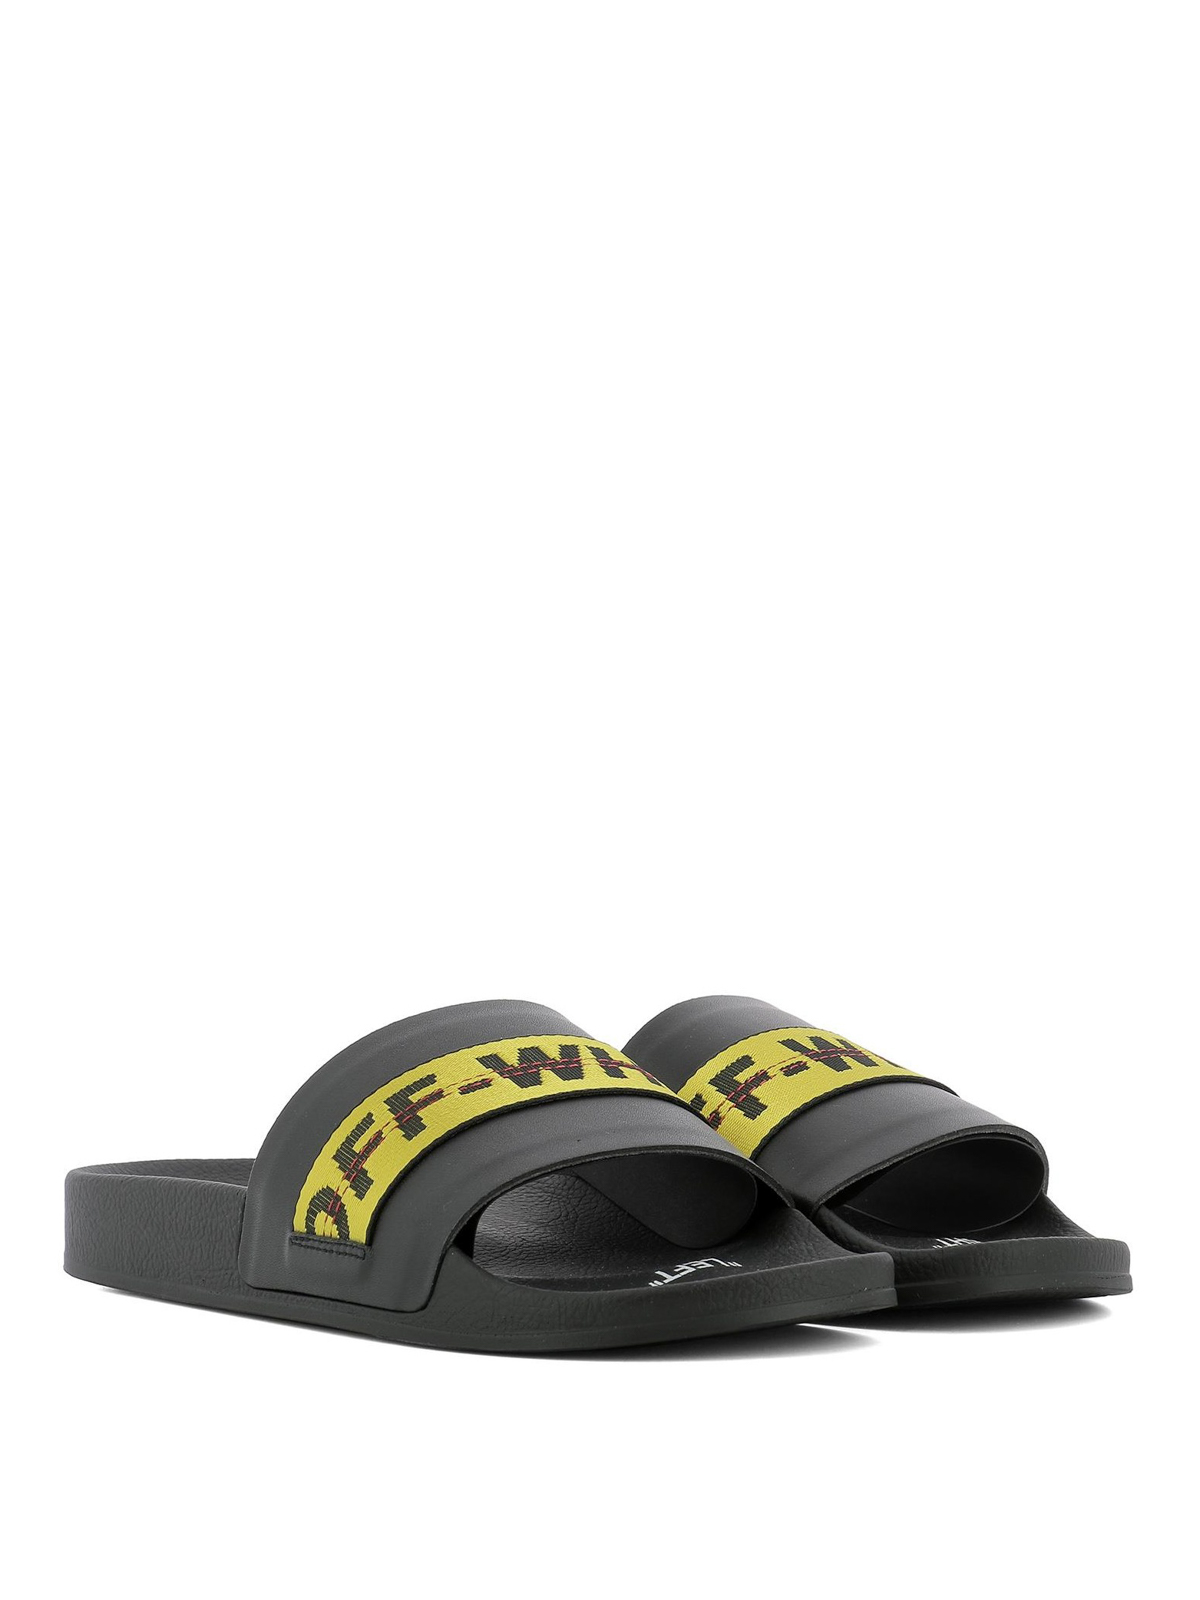 a7828ef8656 Off-White - Industrial leather sliders - sandals - OMIA088E18A450011000